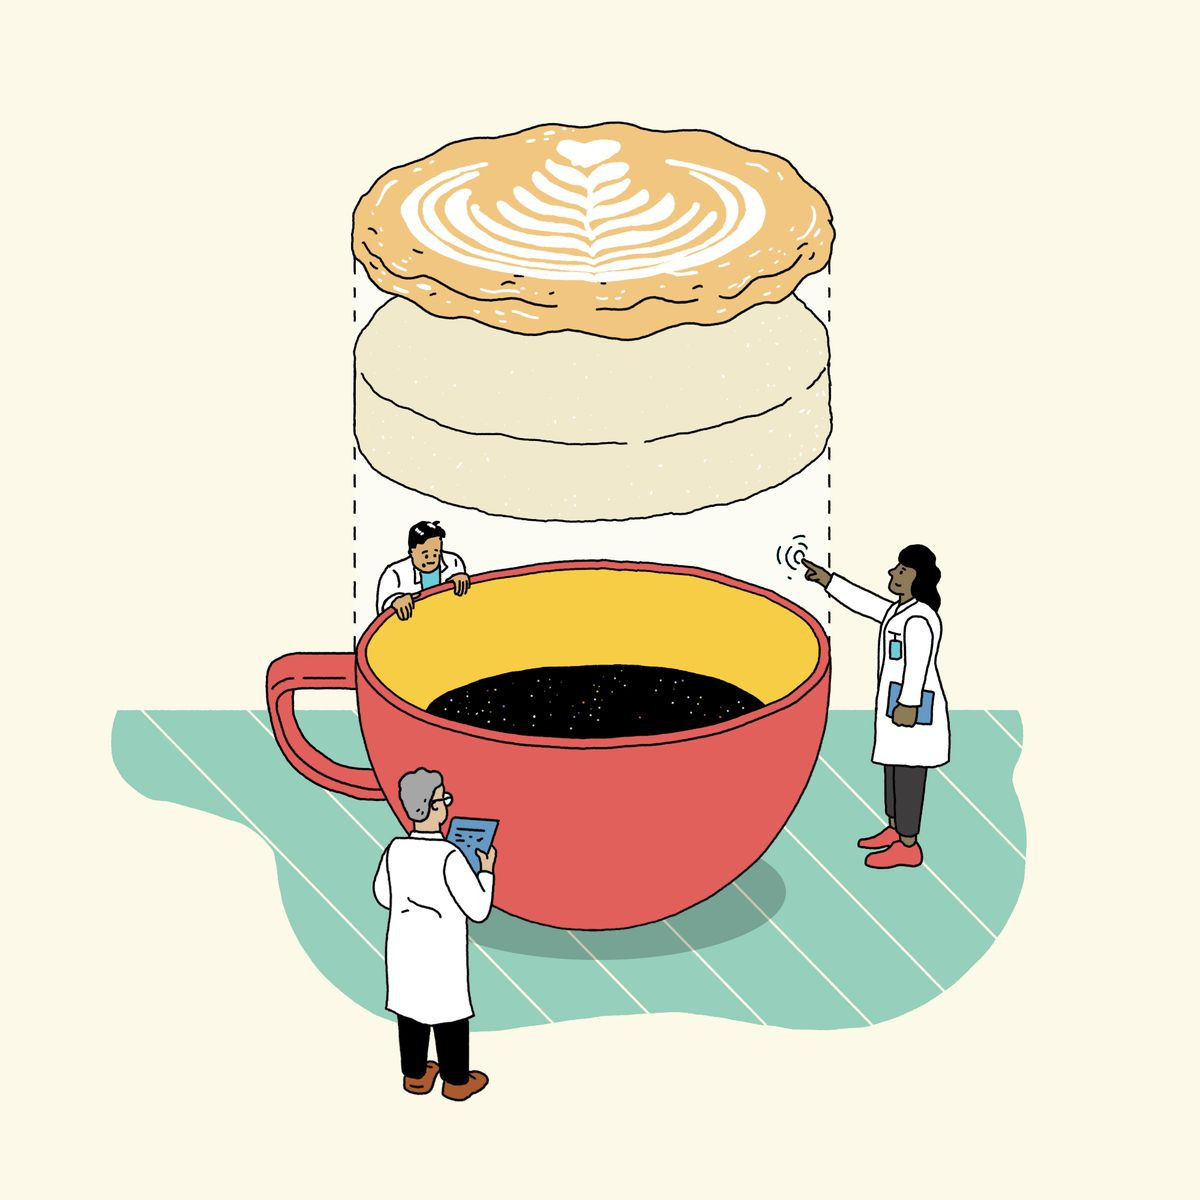 An illustration of a flat white coming together